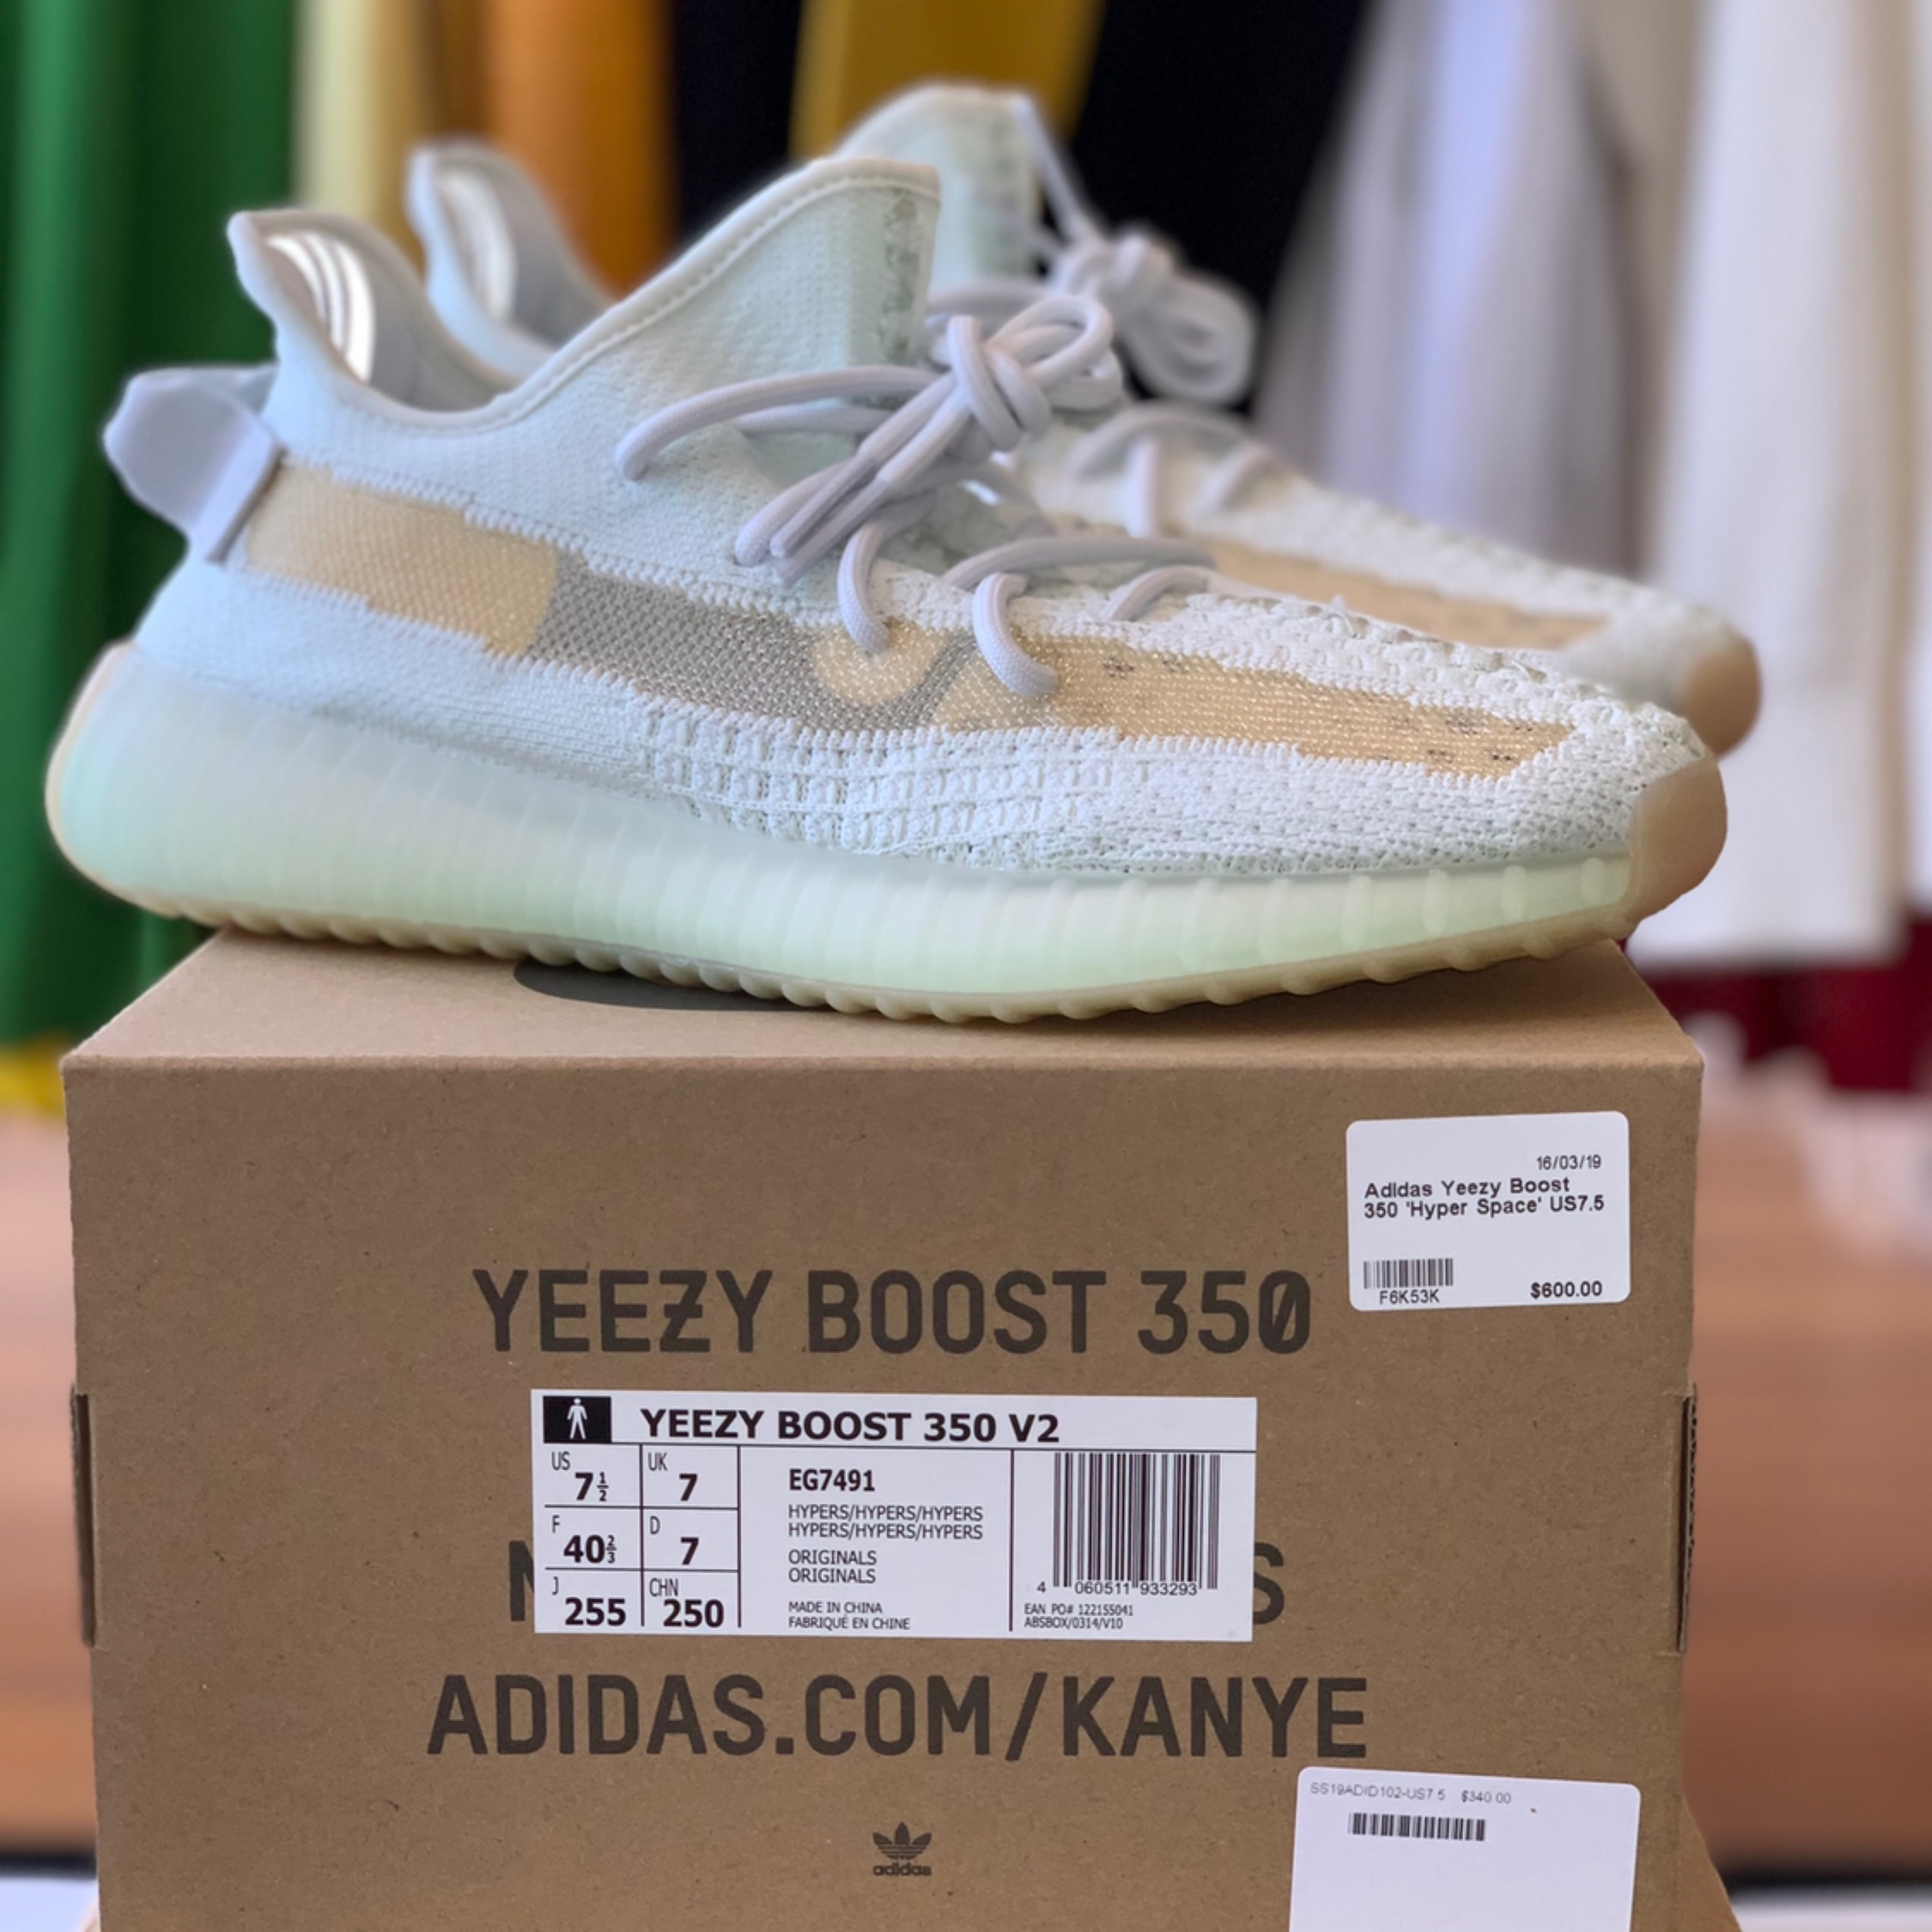 Adidas Yeezy Boost 350 V2 Hyperspace Us7 5